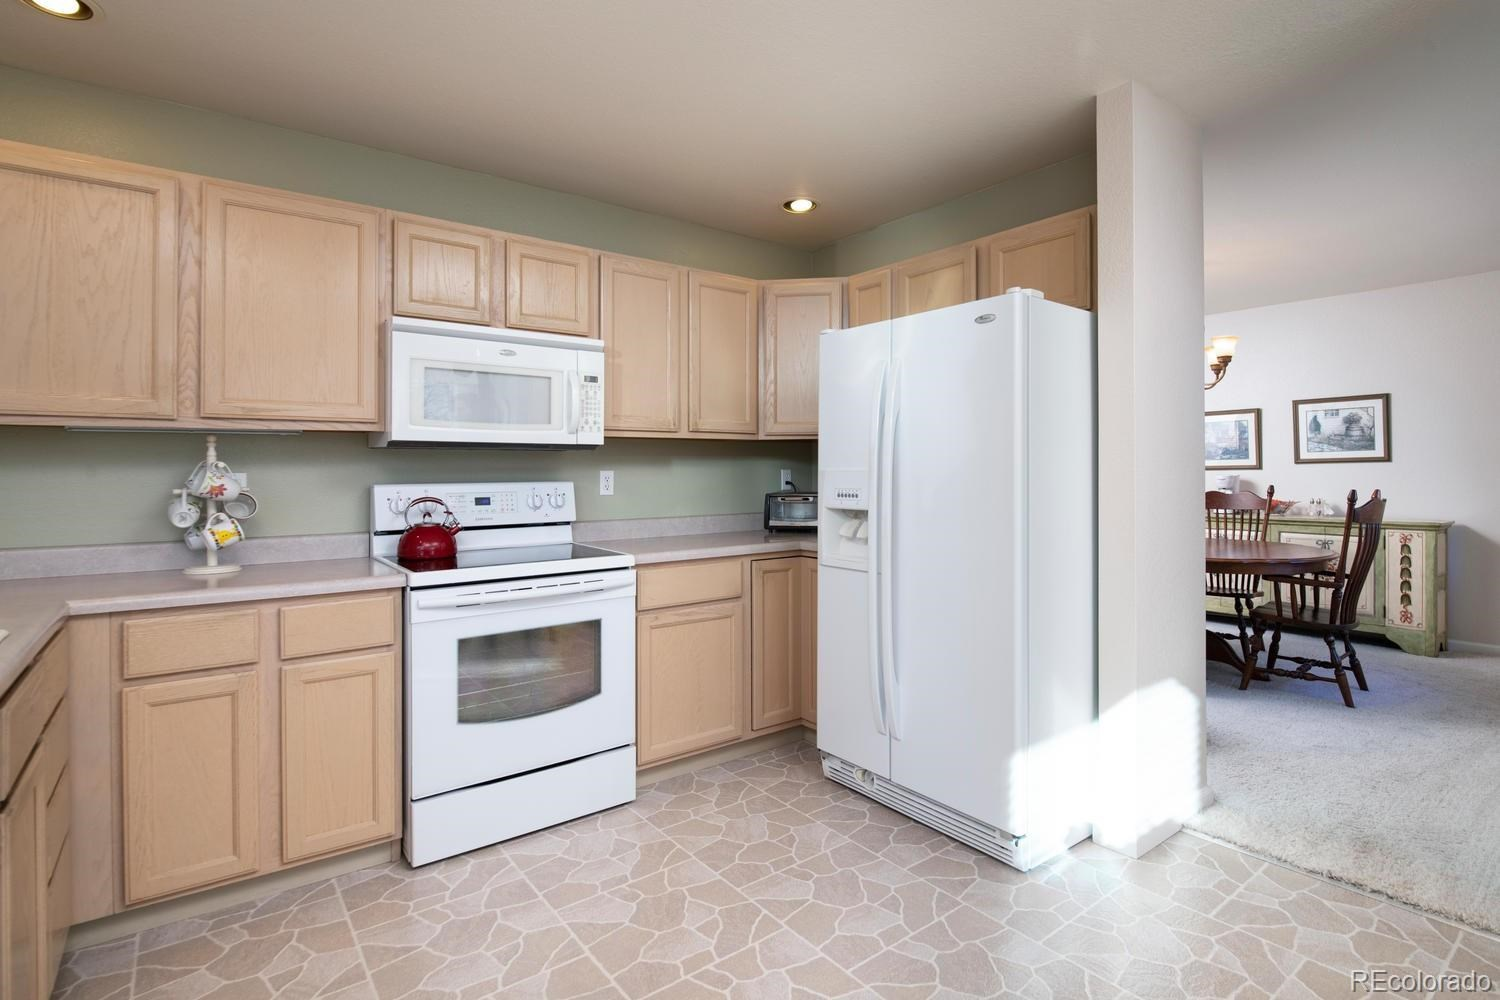 MLS# 8680648 - 10 - 8513 W 94th Avenue, Westminster, CO 80021